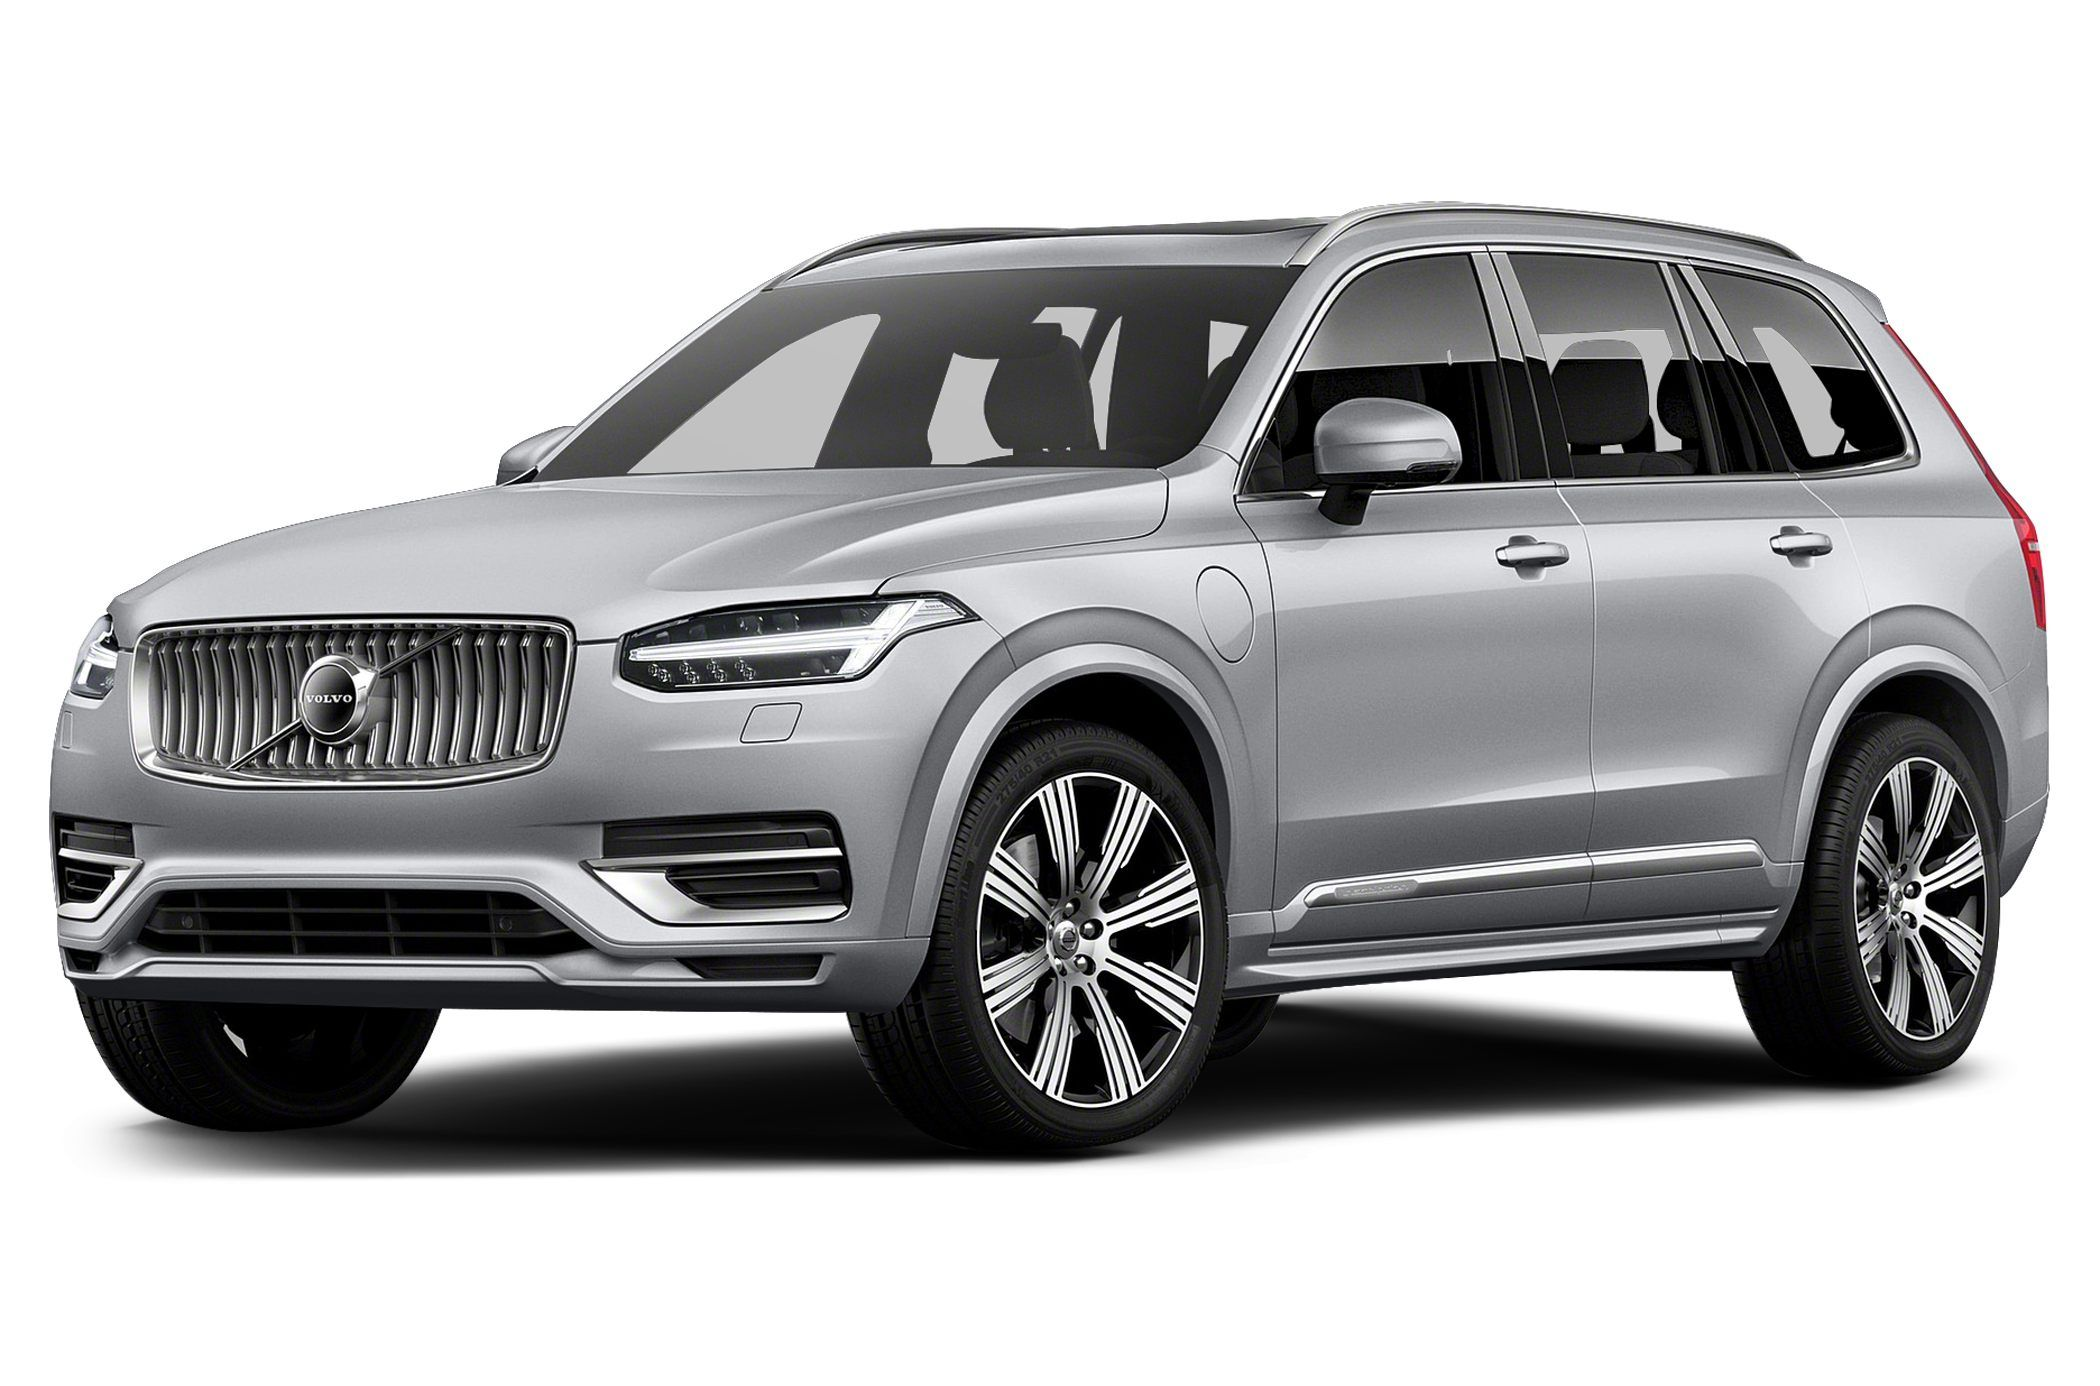 Volvo Xc90 2020 Review Engine Di 2020